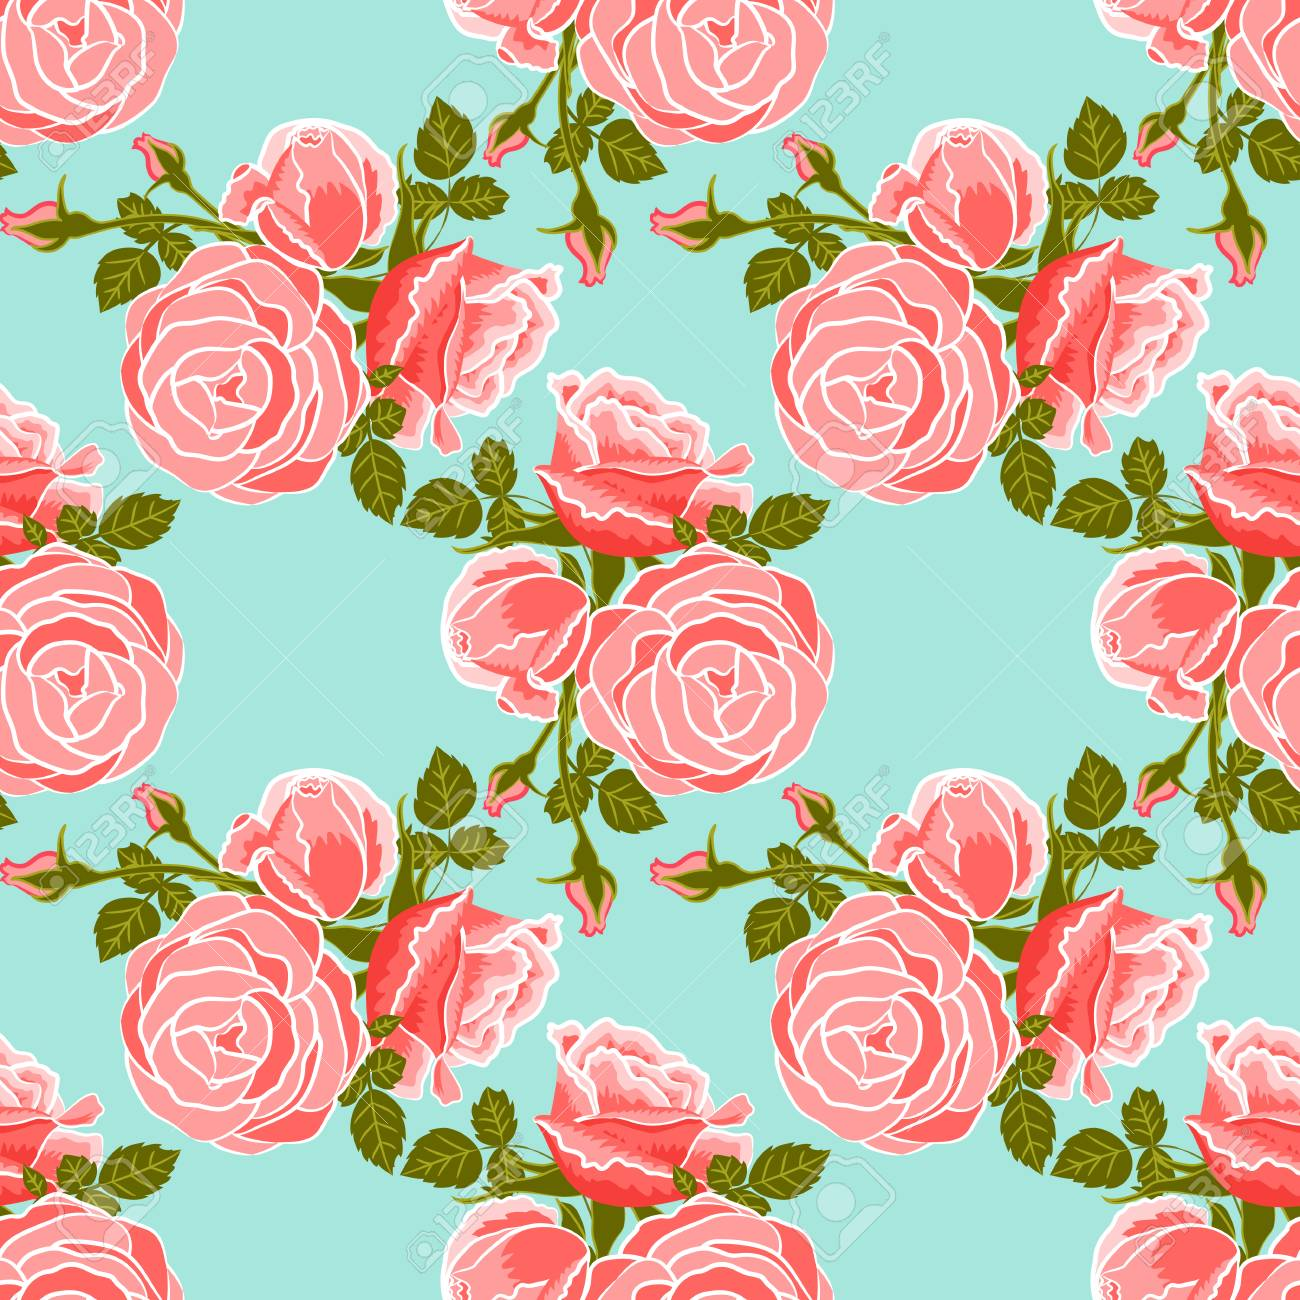 classic wallpaper seamless vintage flower pattern on blue background